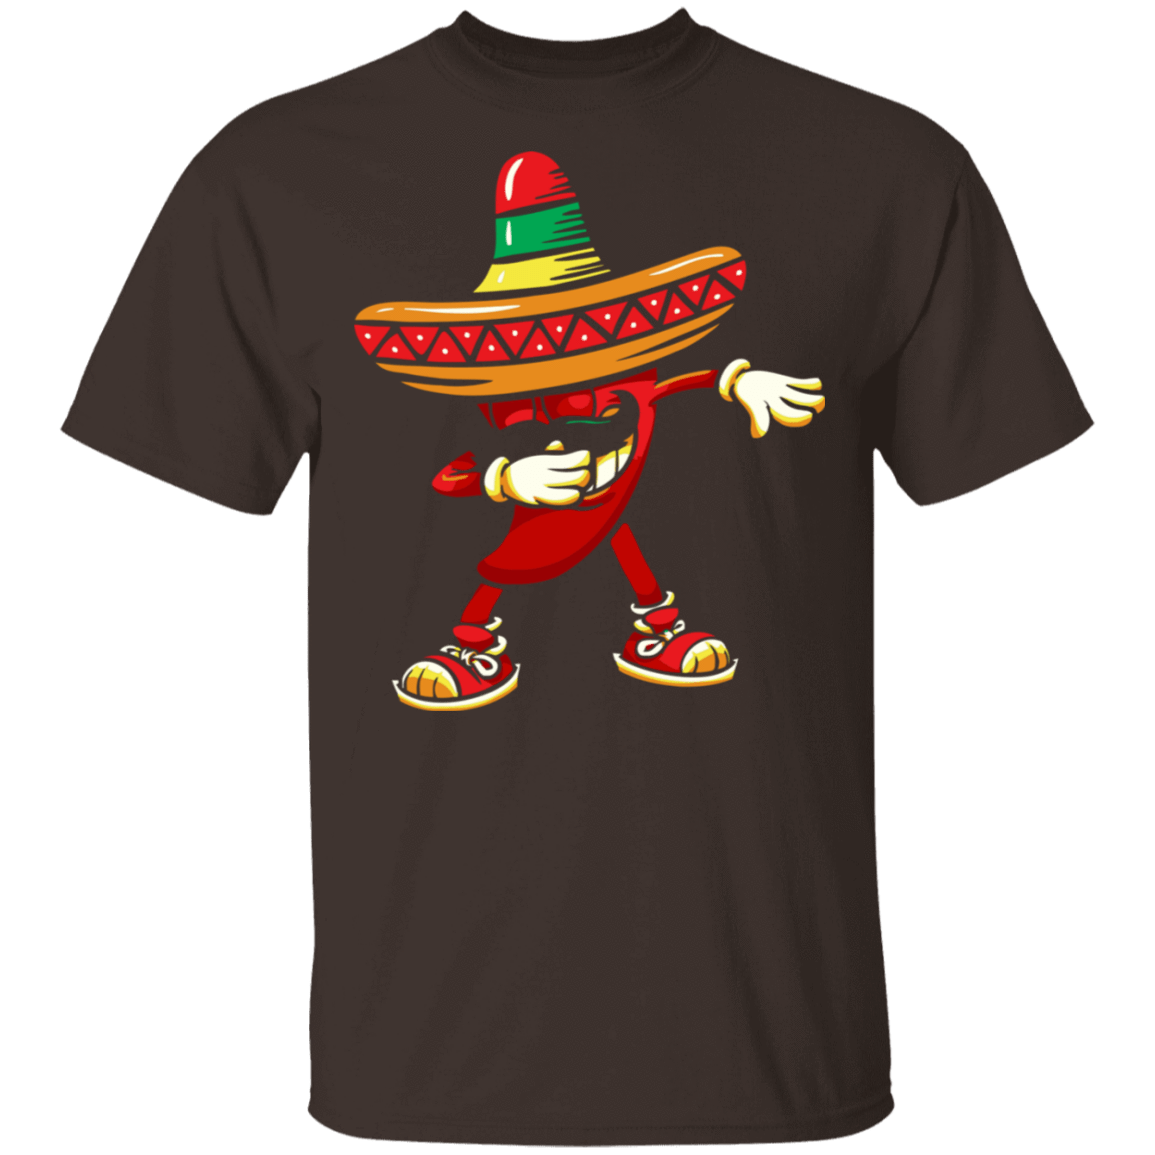 Drinco Party Shirt Tequila Fiesta Food Costume Tee T-Shirts, Hoodies, Tank 22-2283-79310264-12087 - Tee Ript